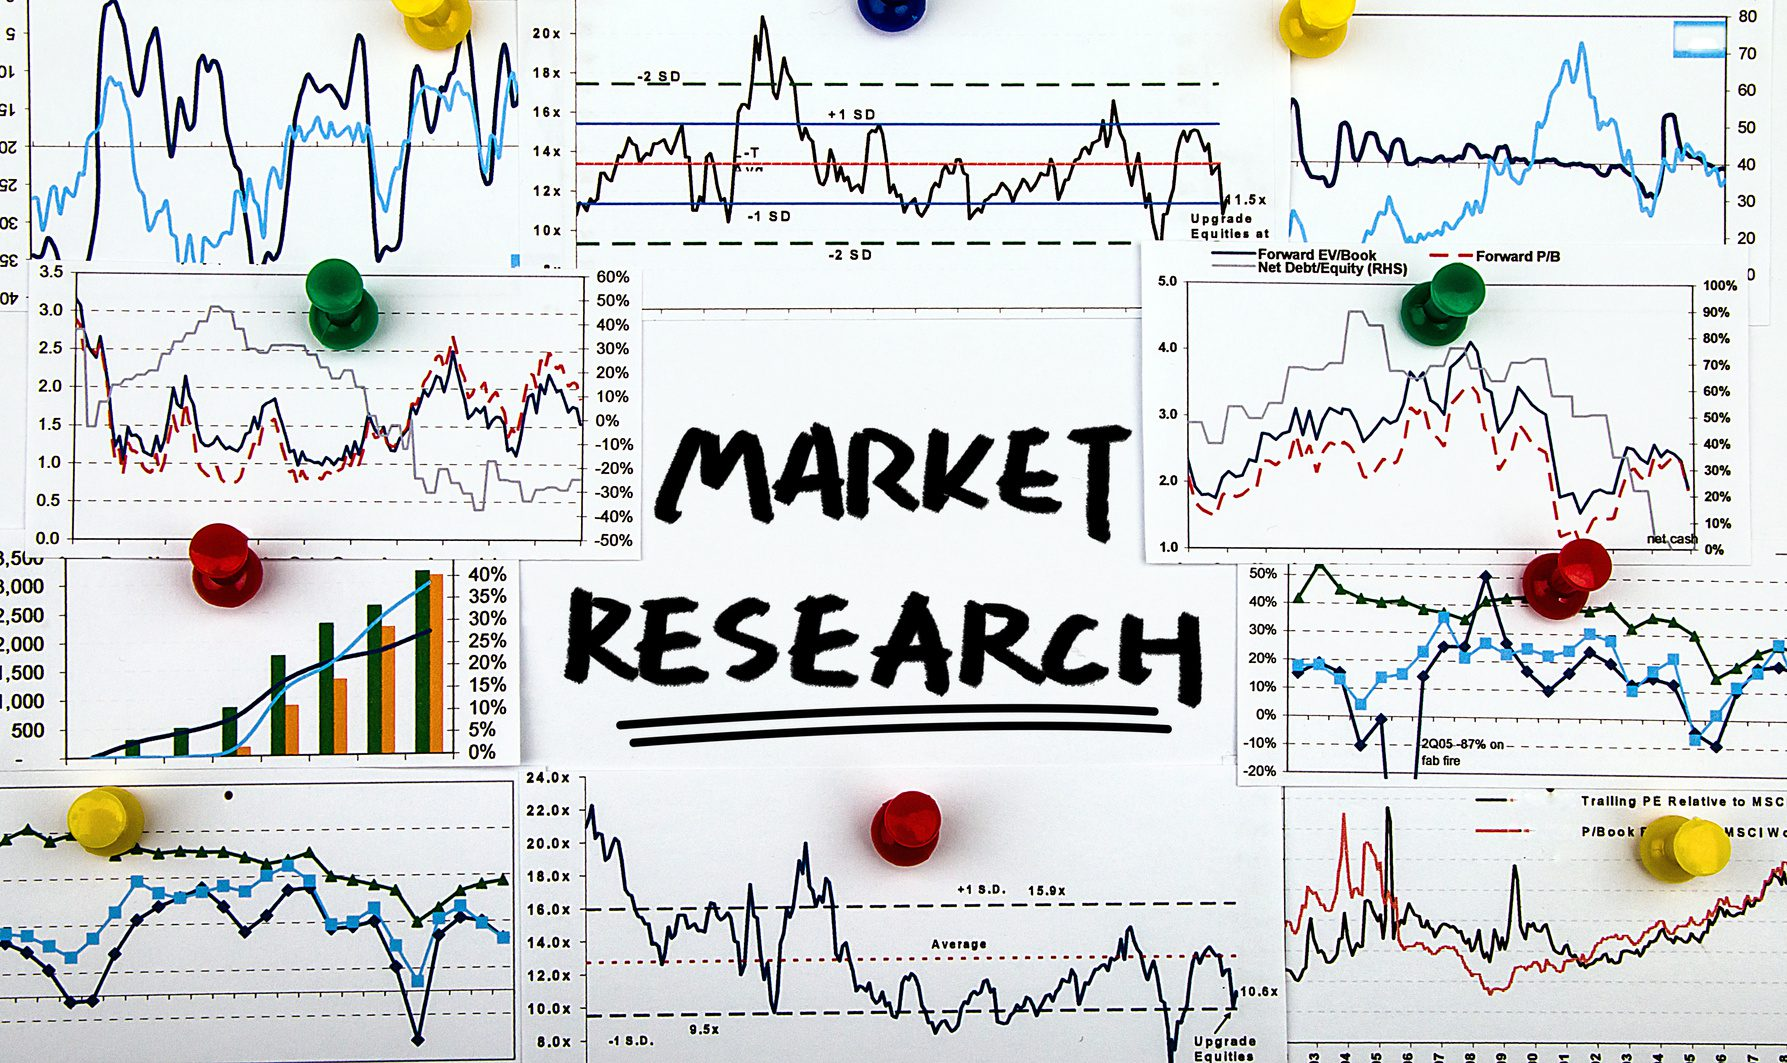 Building strong foundations - A complete guide to market research - BOSS DIGITAL